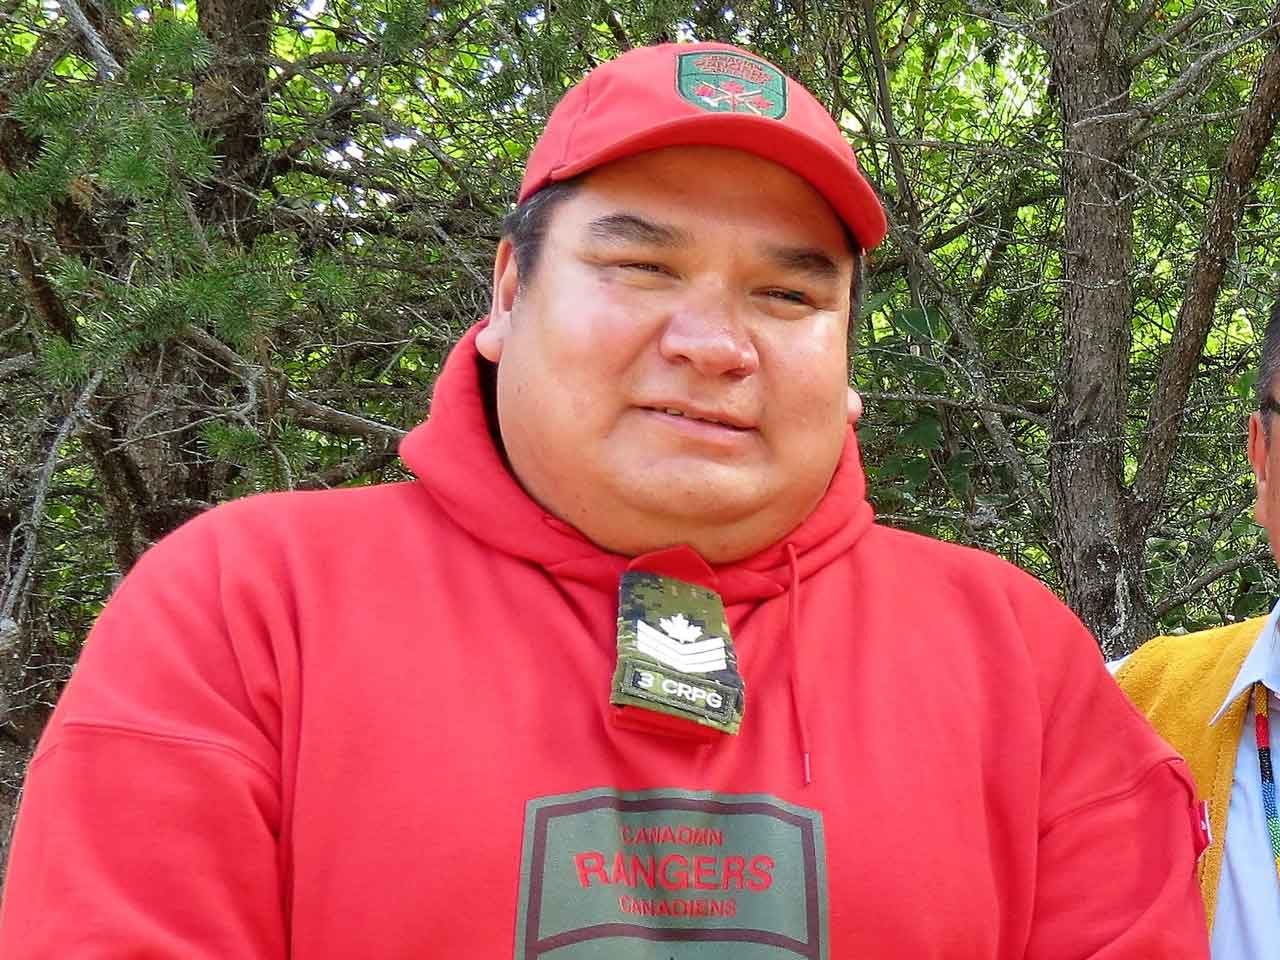 Sergeant Matthew Gull has been a Canadian Ranger for 22 years - photo Sgt. Peter Moon Canadian Rangers